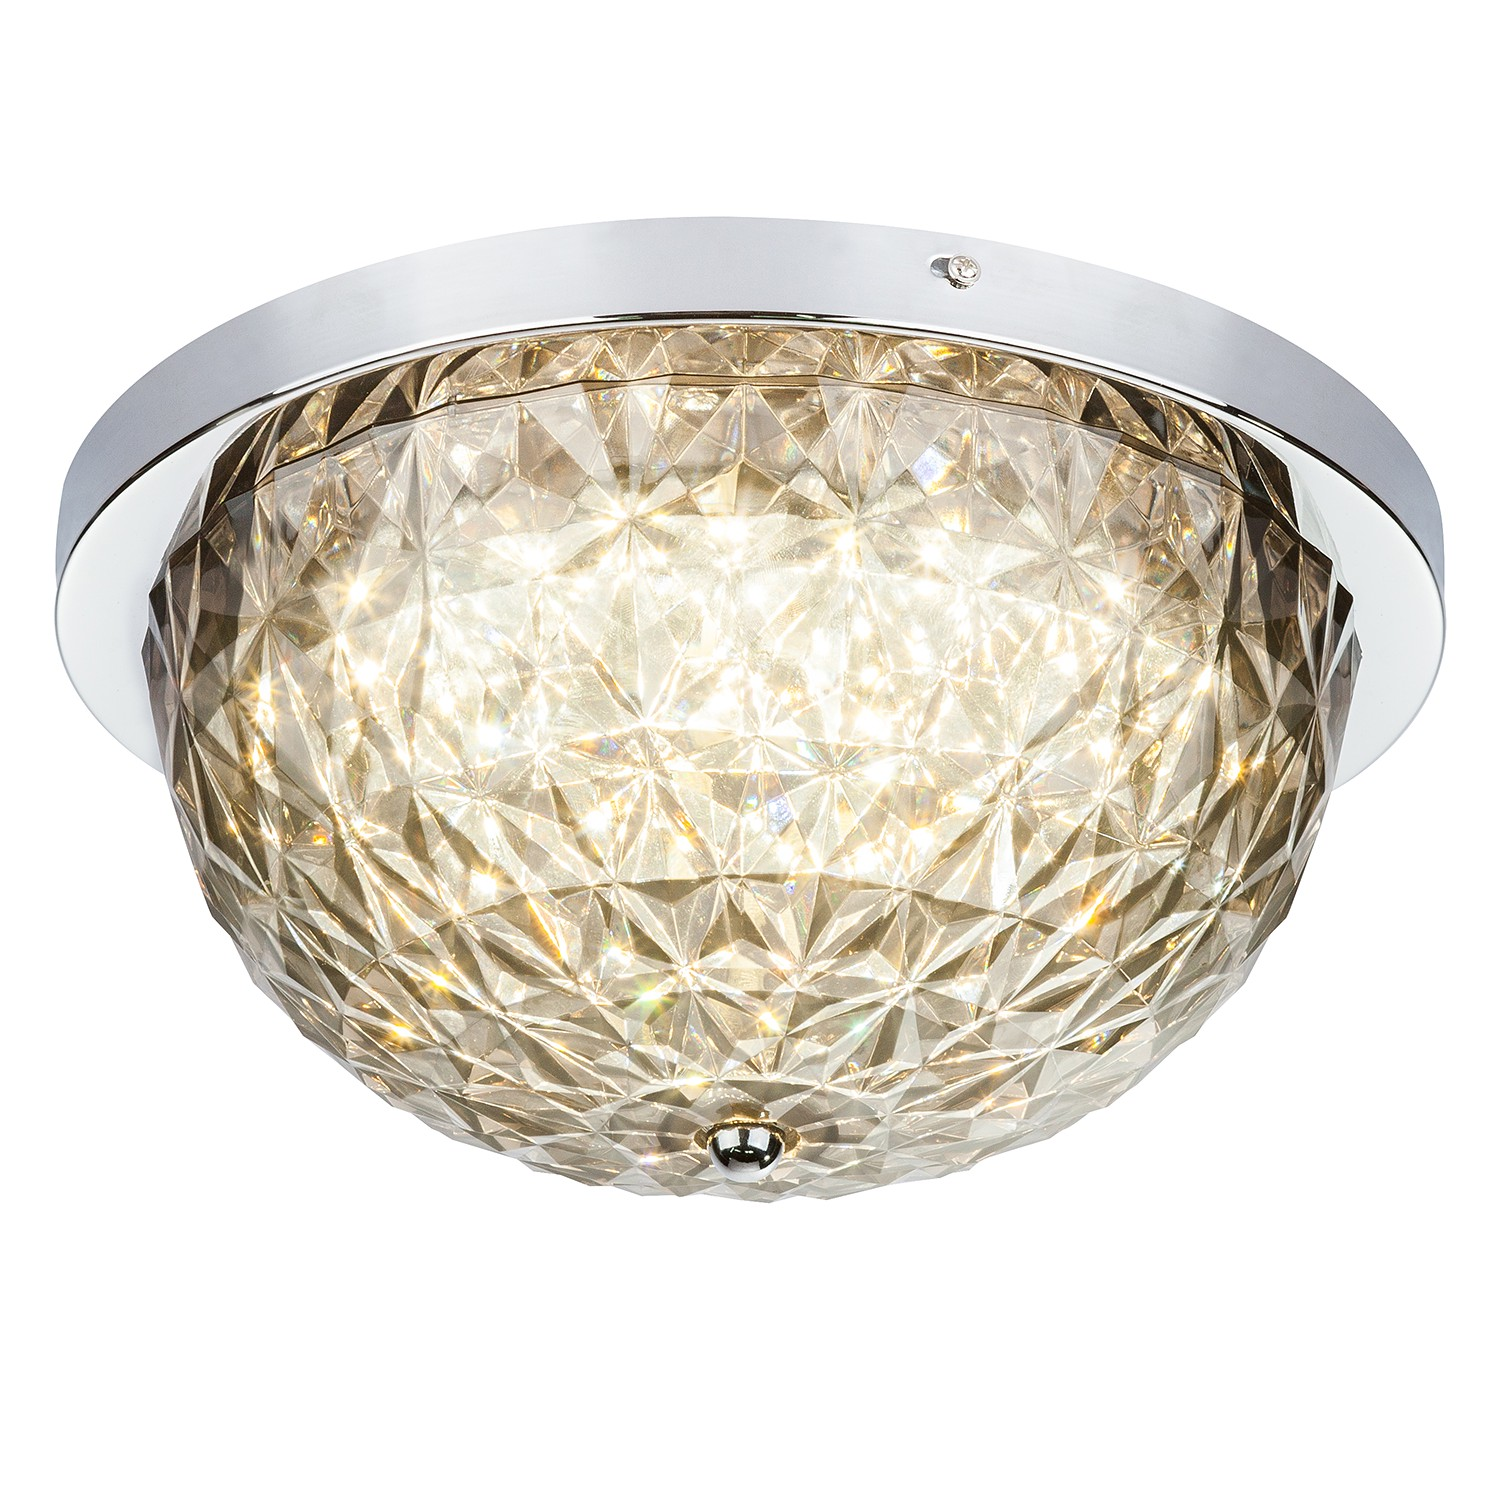 LED-Deckenleuchte Vayon II, Globo Lighting